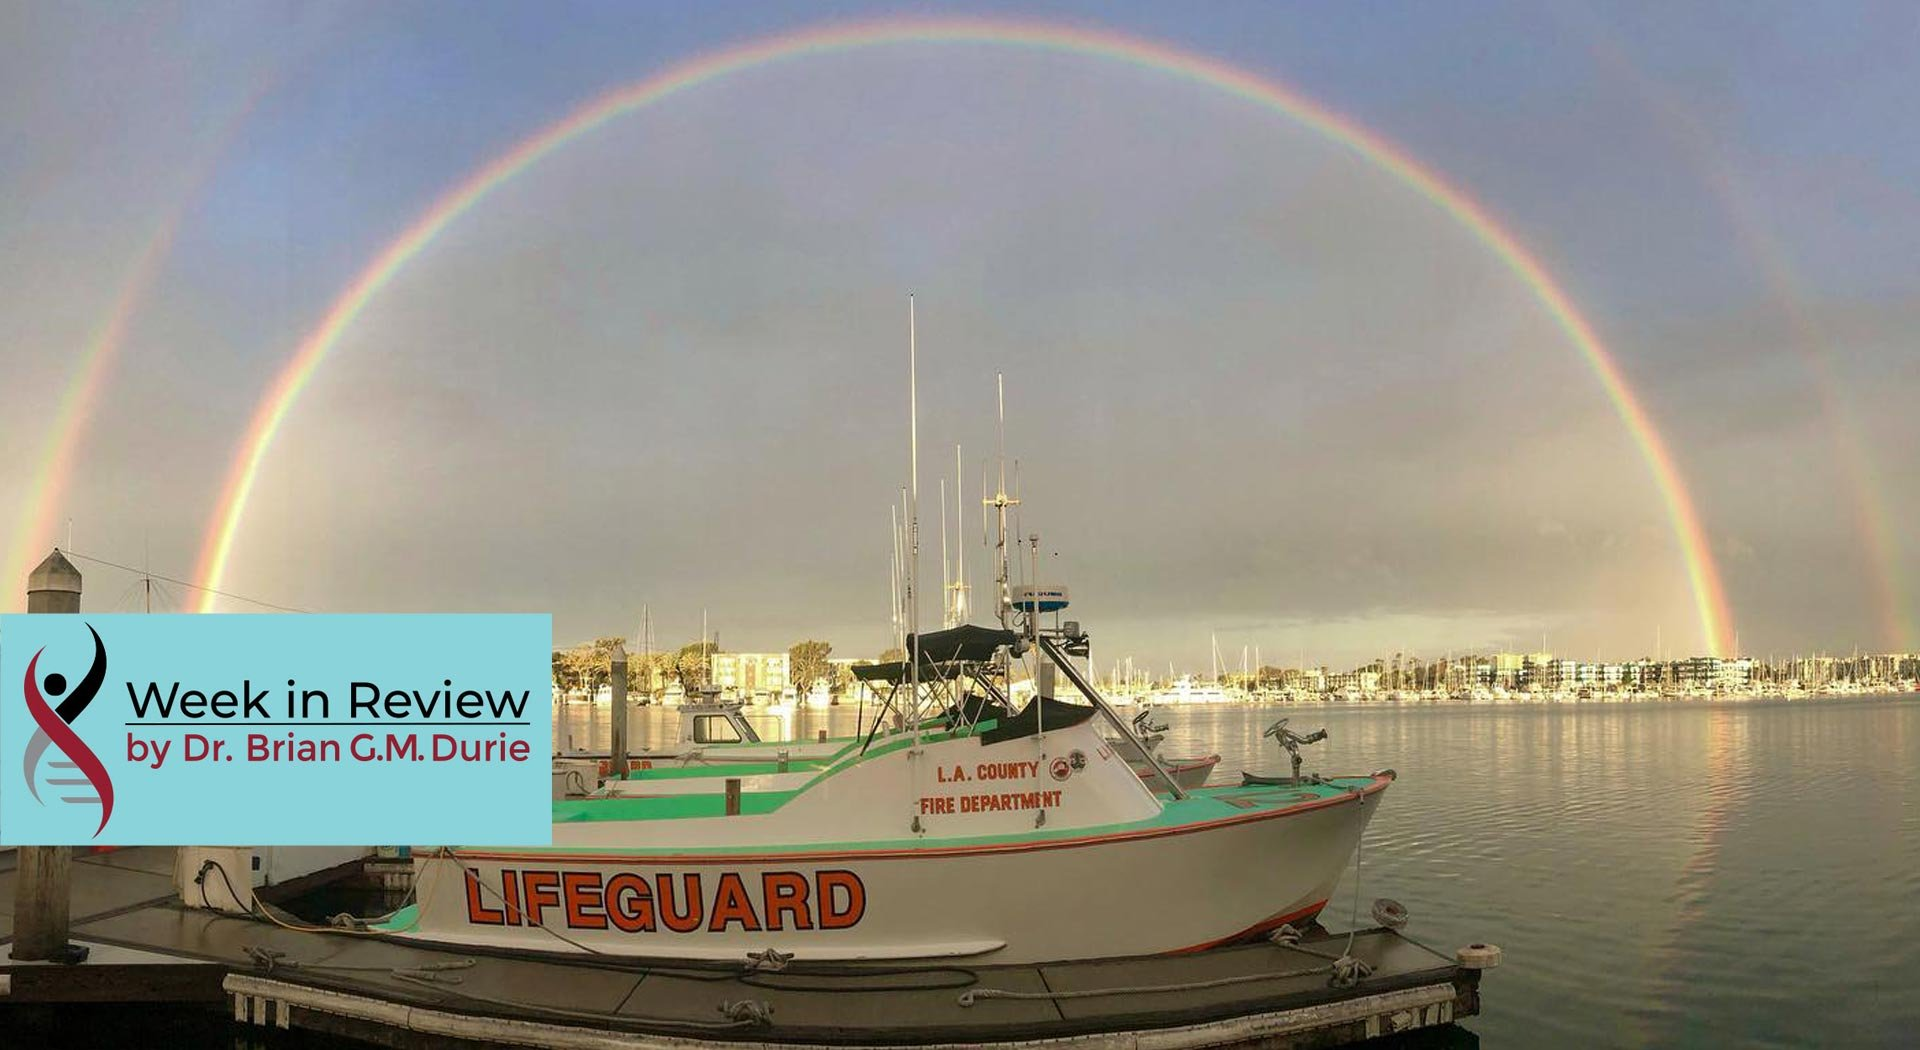 Lifeguard boat rainbow